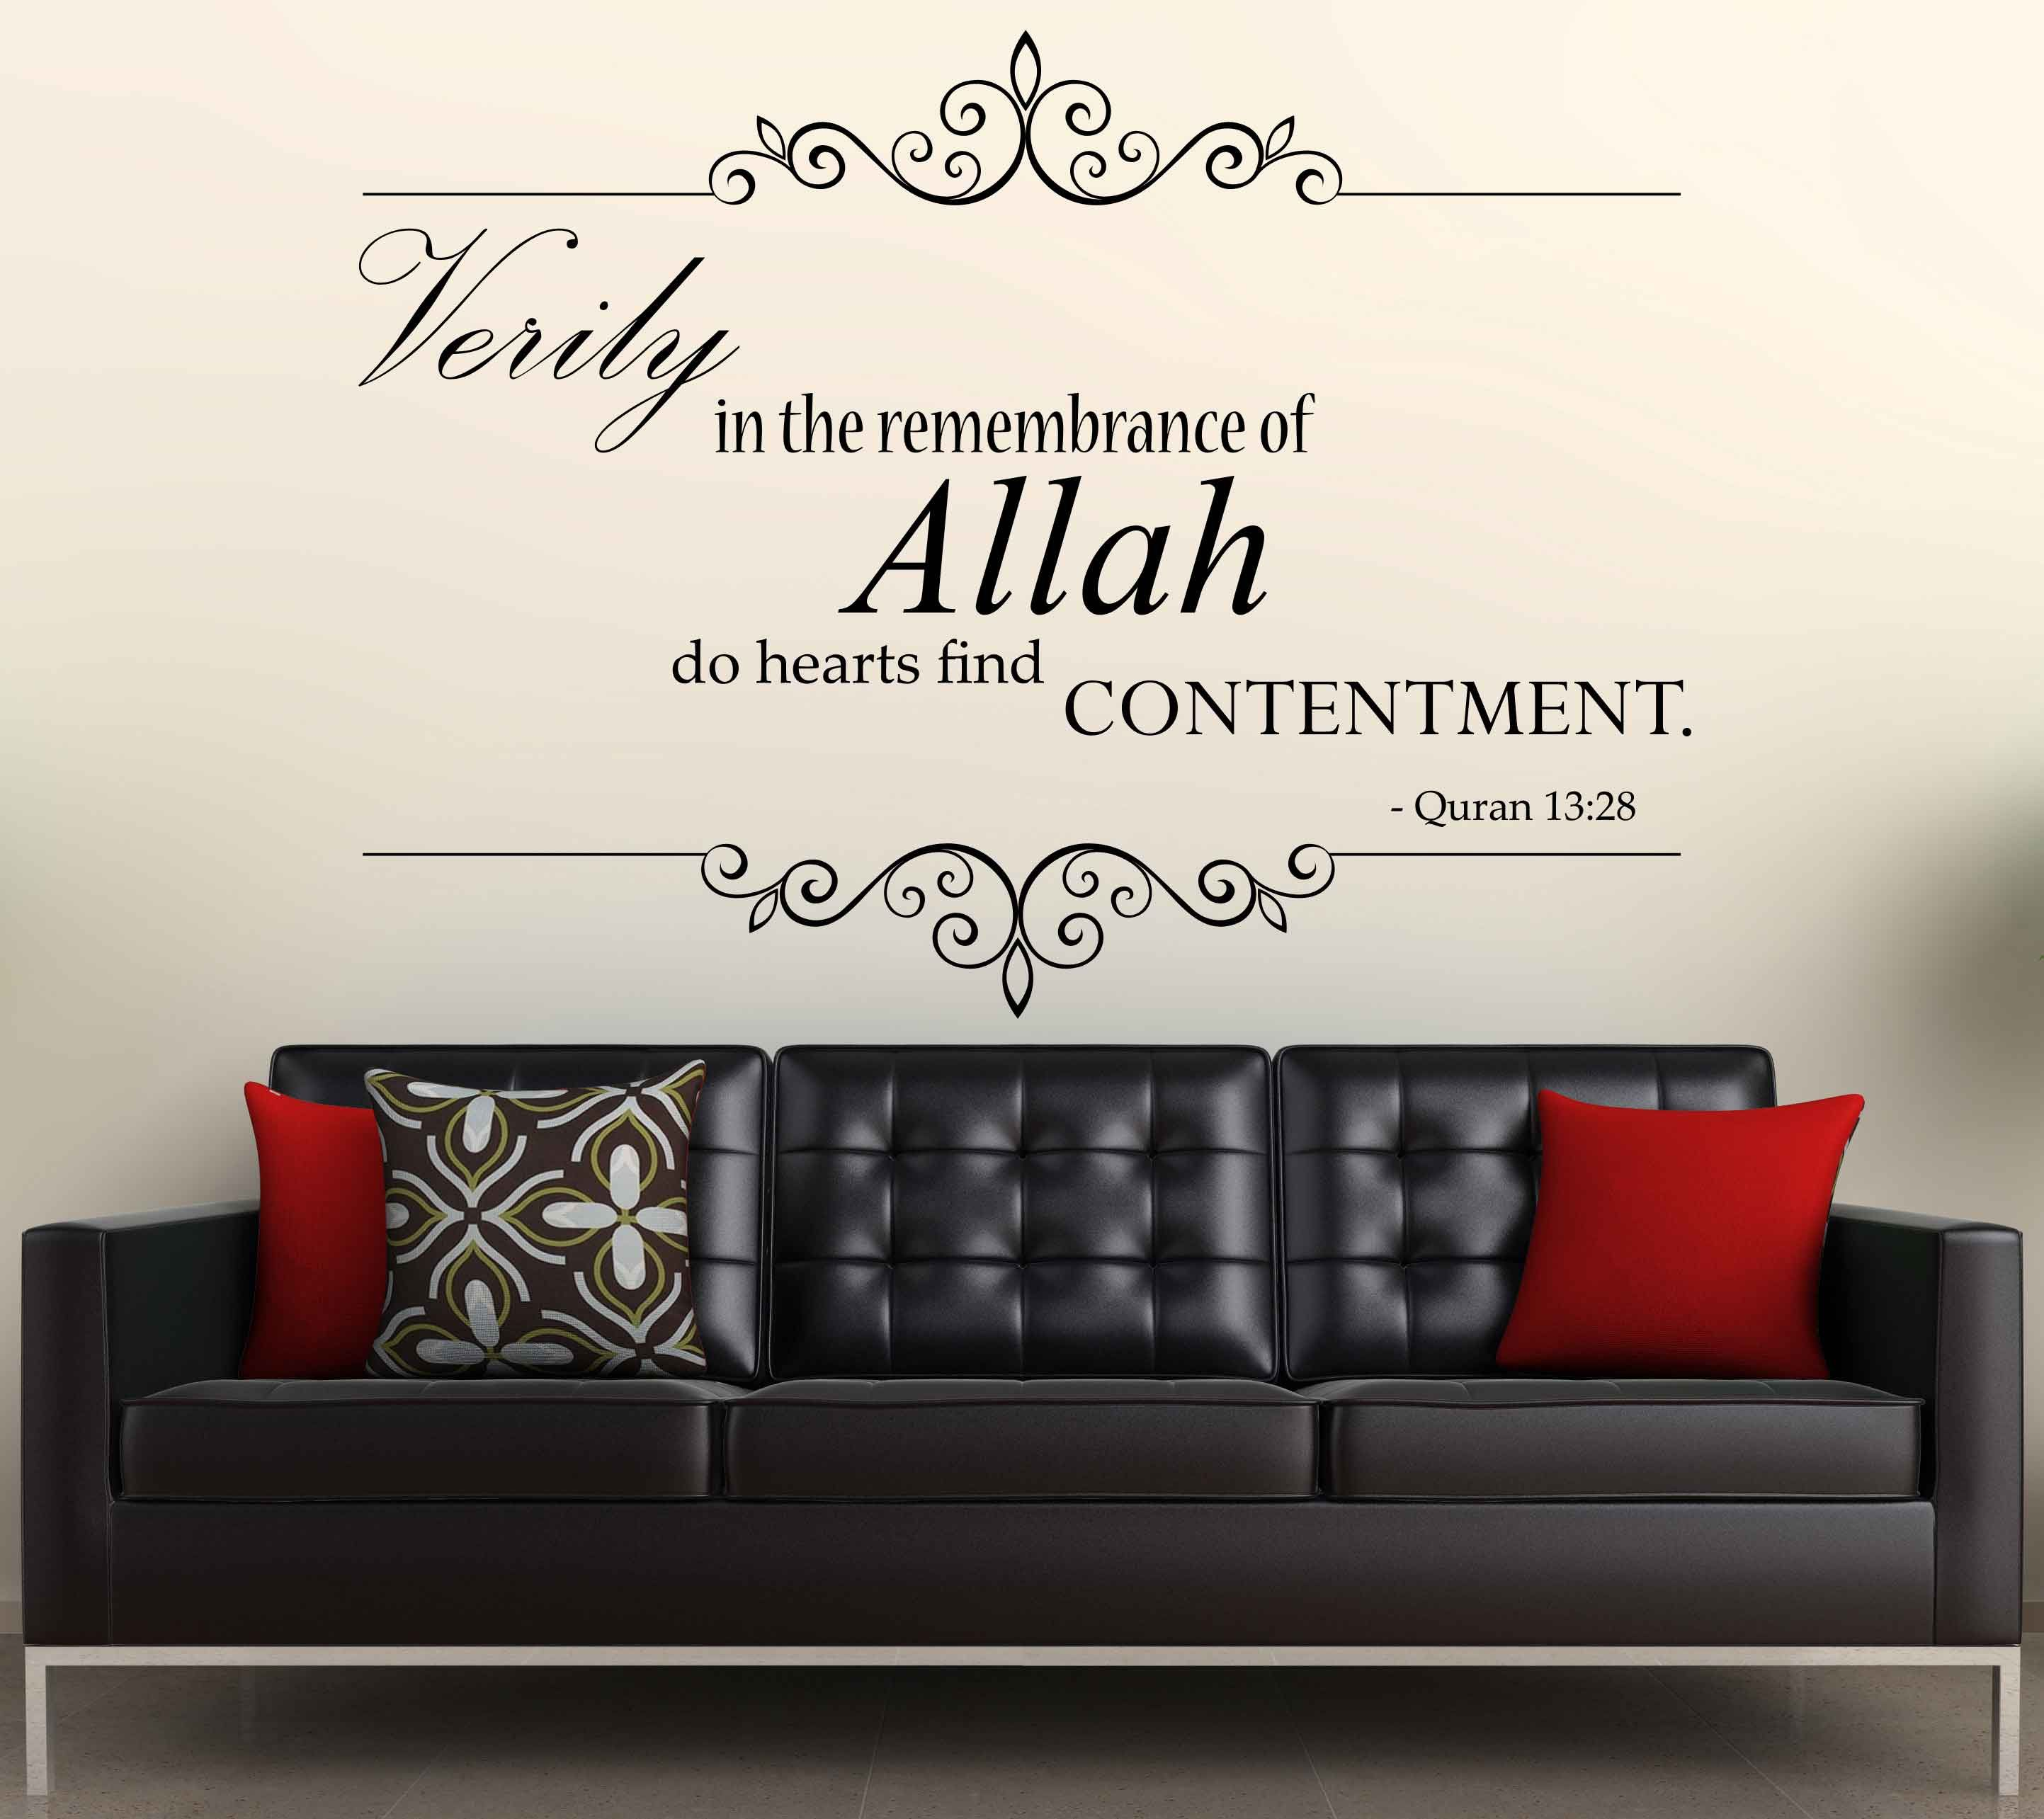 Zama designs verily in the remembrance of allah islamic wall art shop fi sabil allah - Stickers islam ...